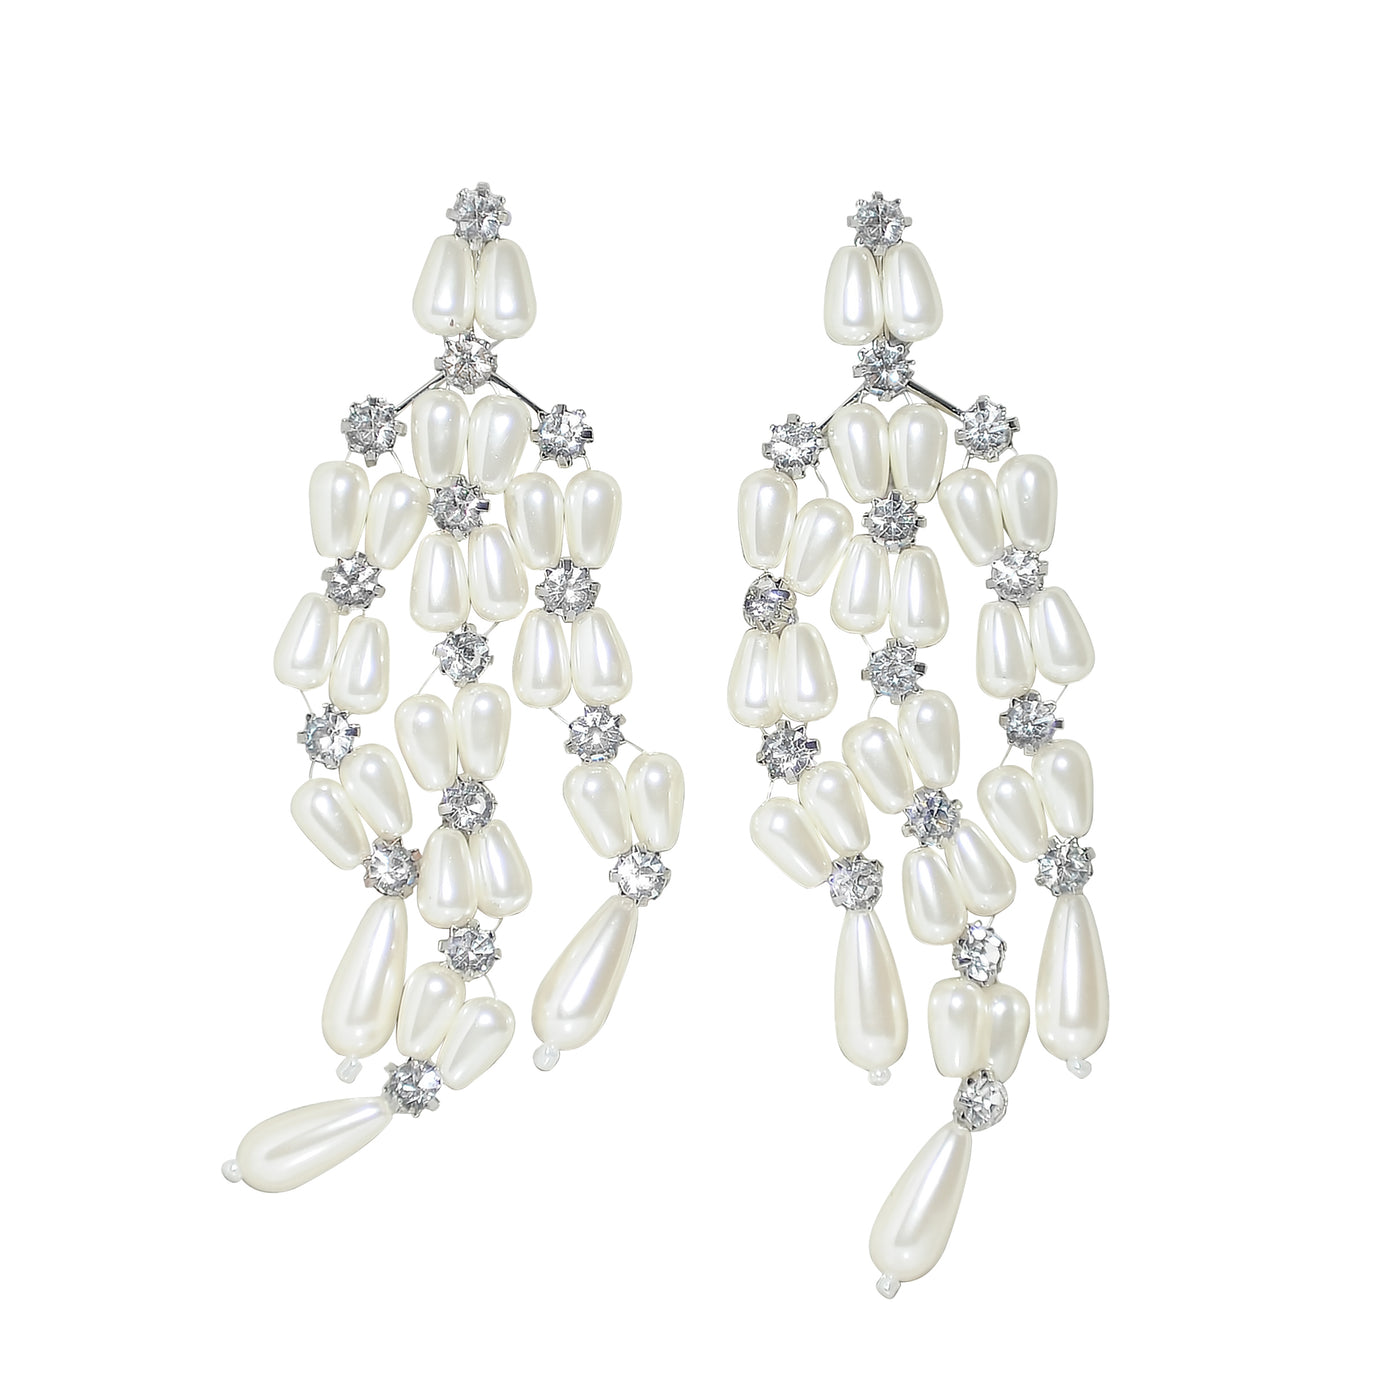 Original Pearl Drop Earrings - Marble Hive